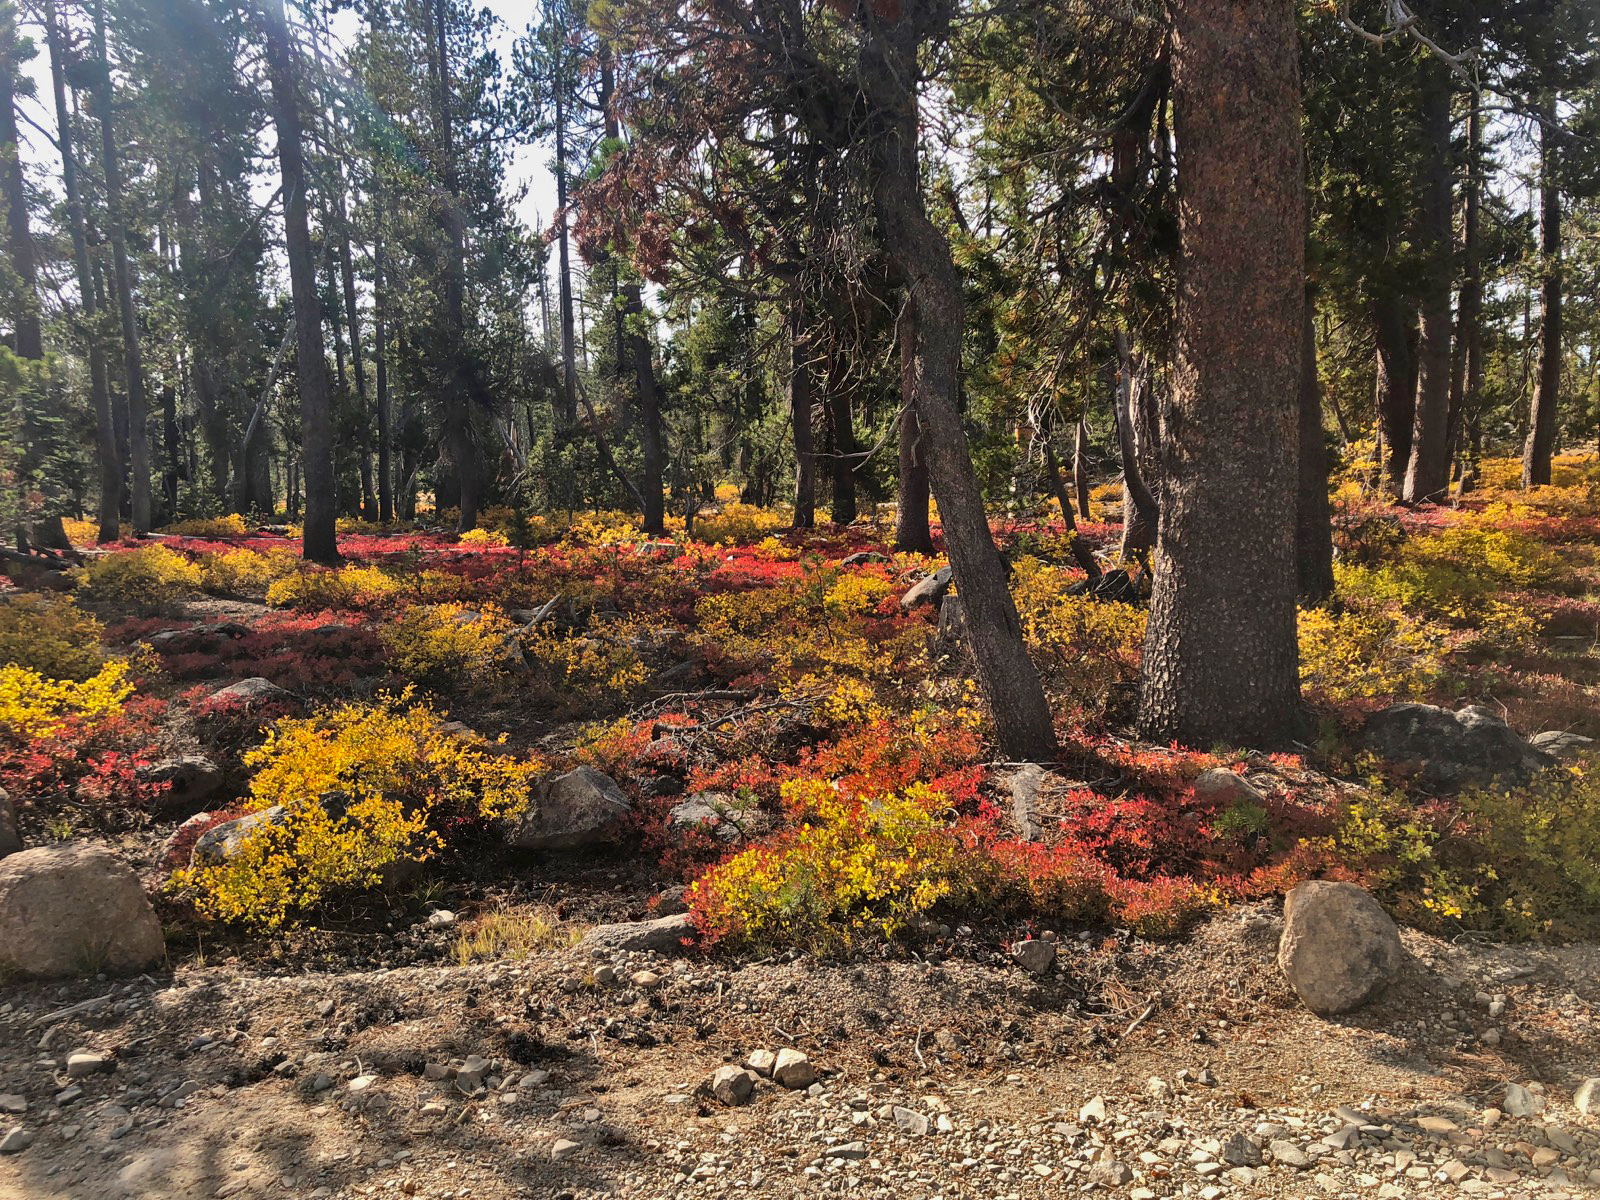 Fall color on the forest floor at Royal Gorge.